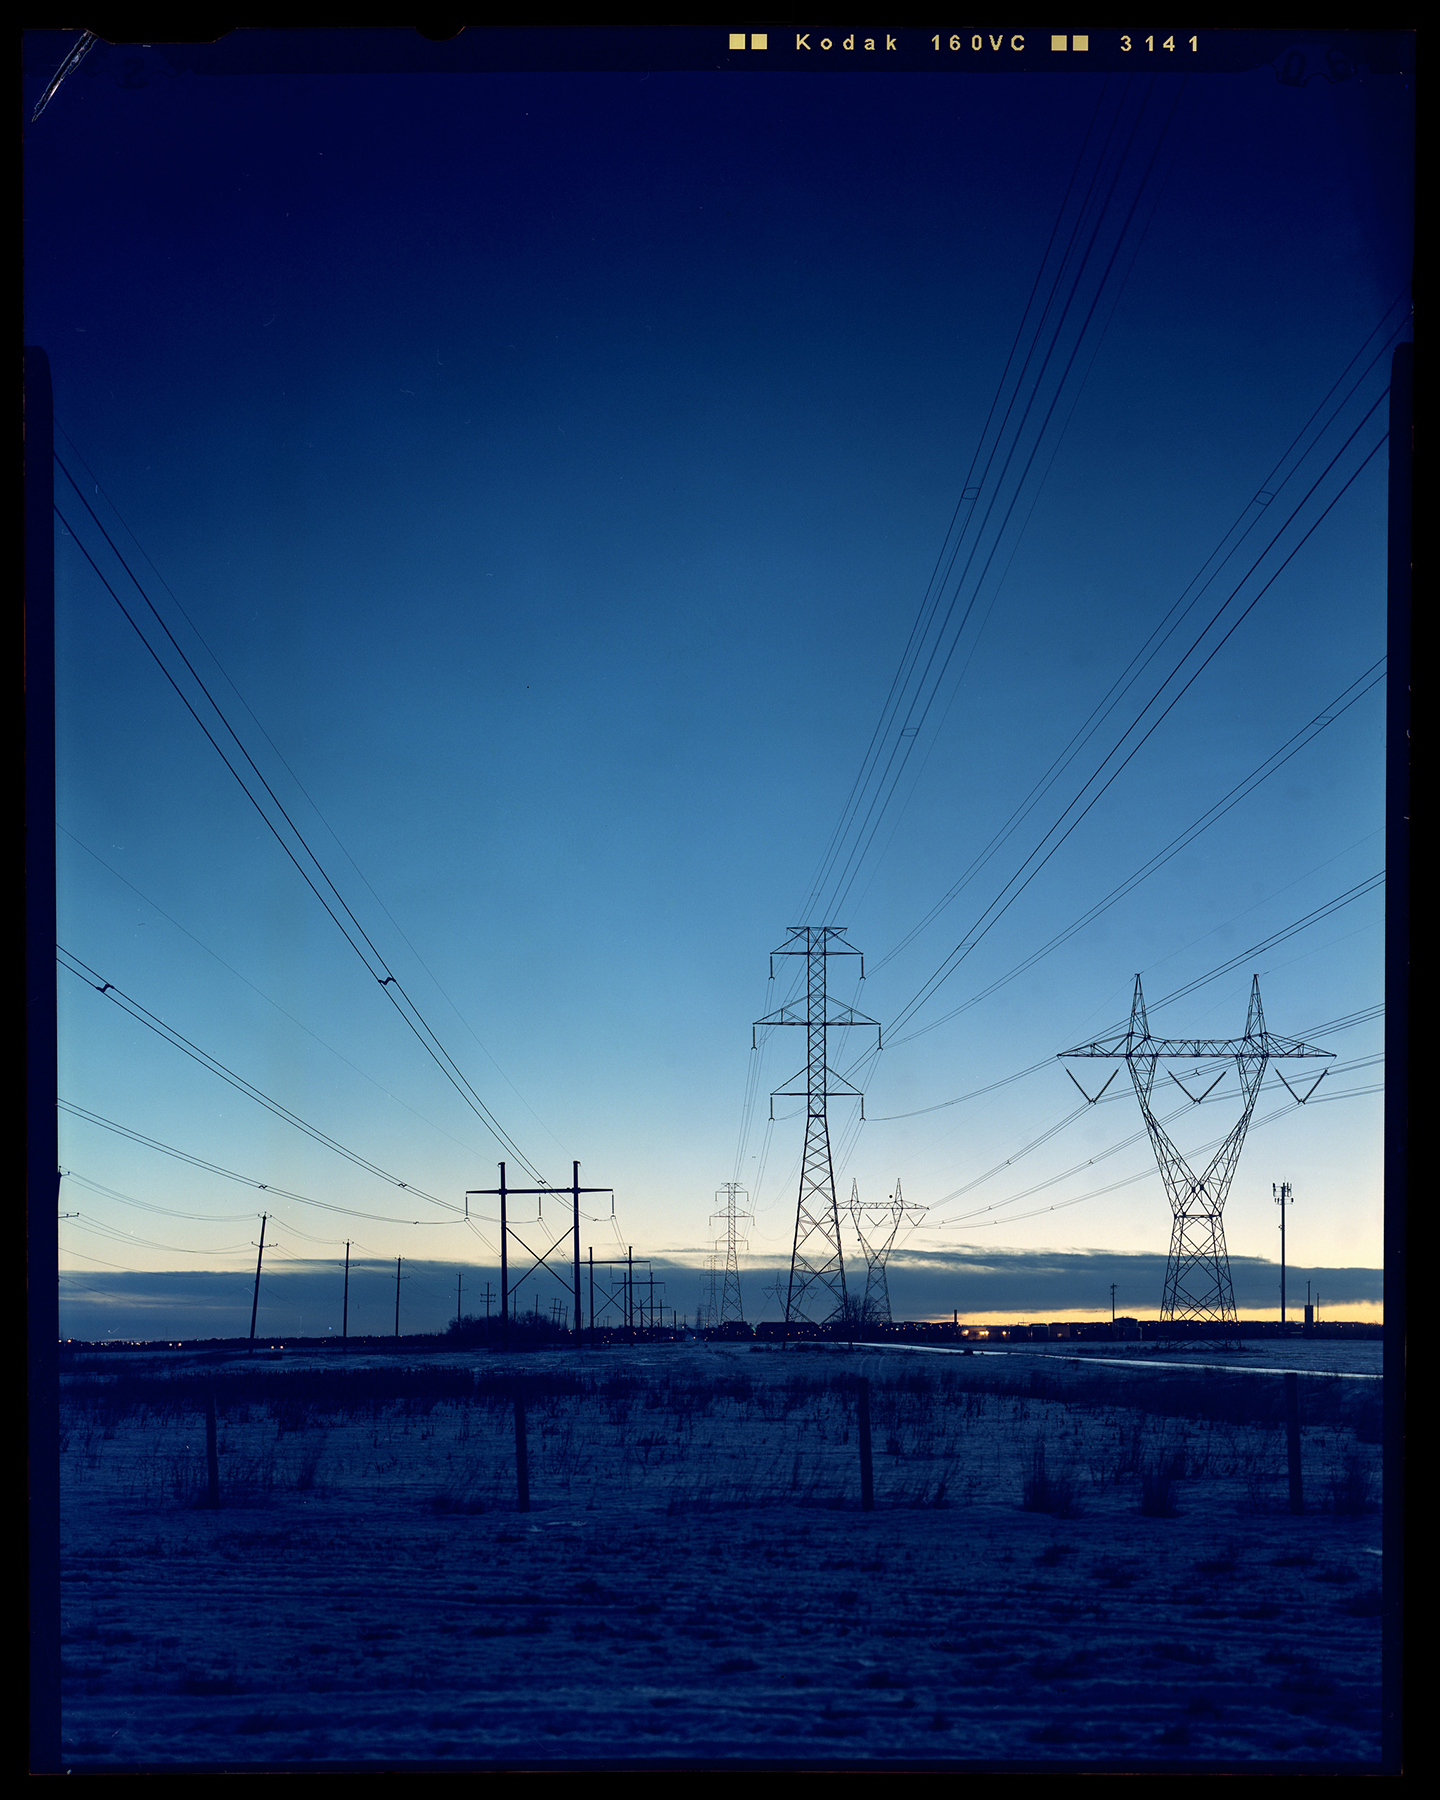 Power Lines At Sunrise | Toyo Omega View 45D Nikkor W150 f5.6 | Jordan Urie